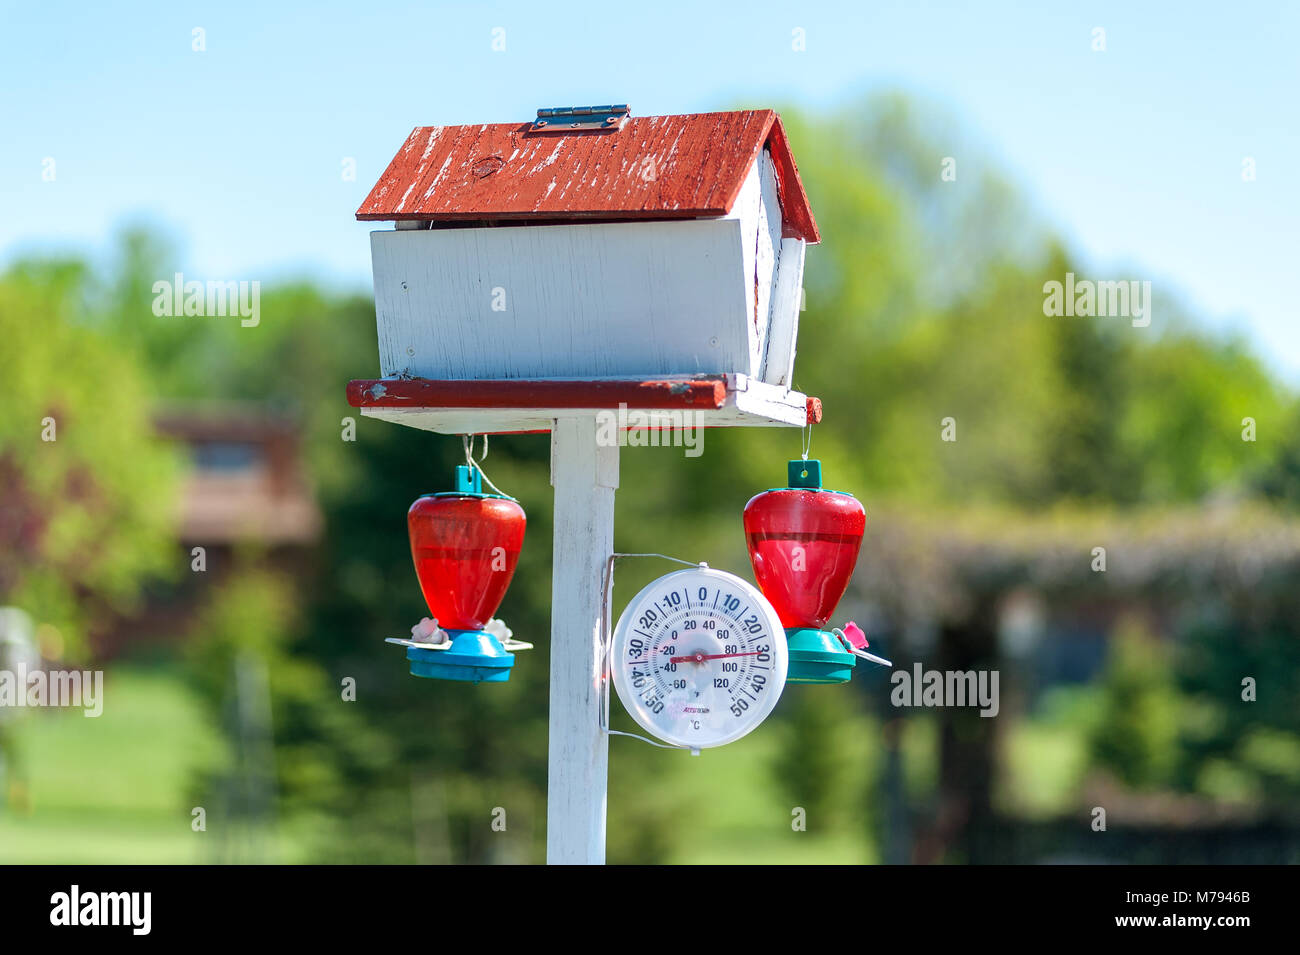 Thermometer with bird house and hummingbird feeders - Stock Image